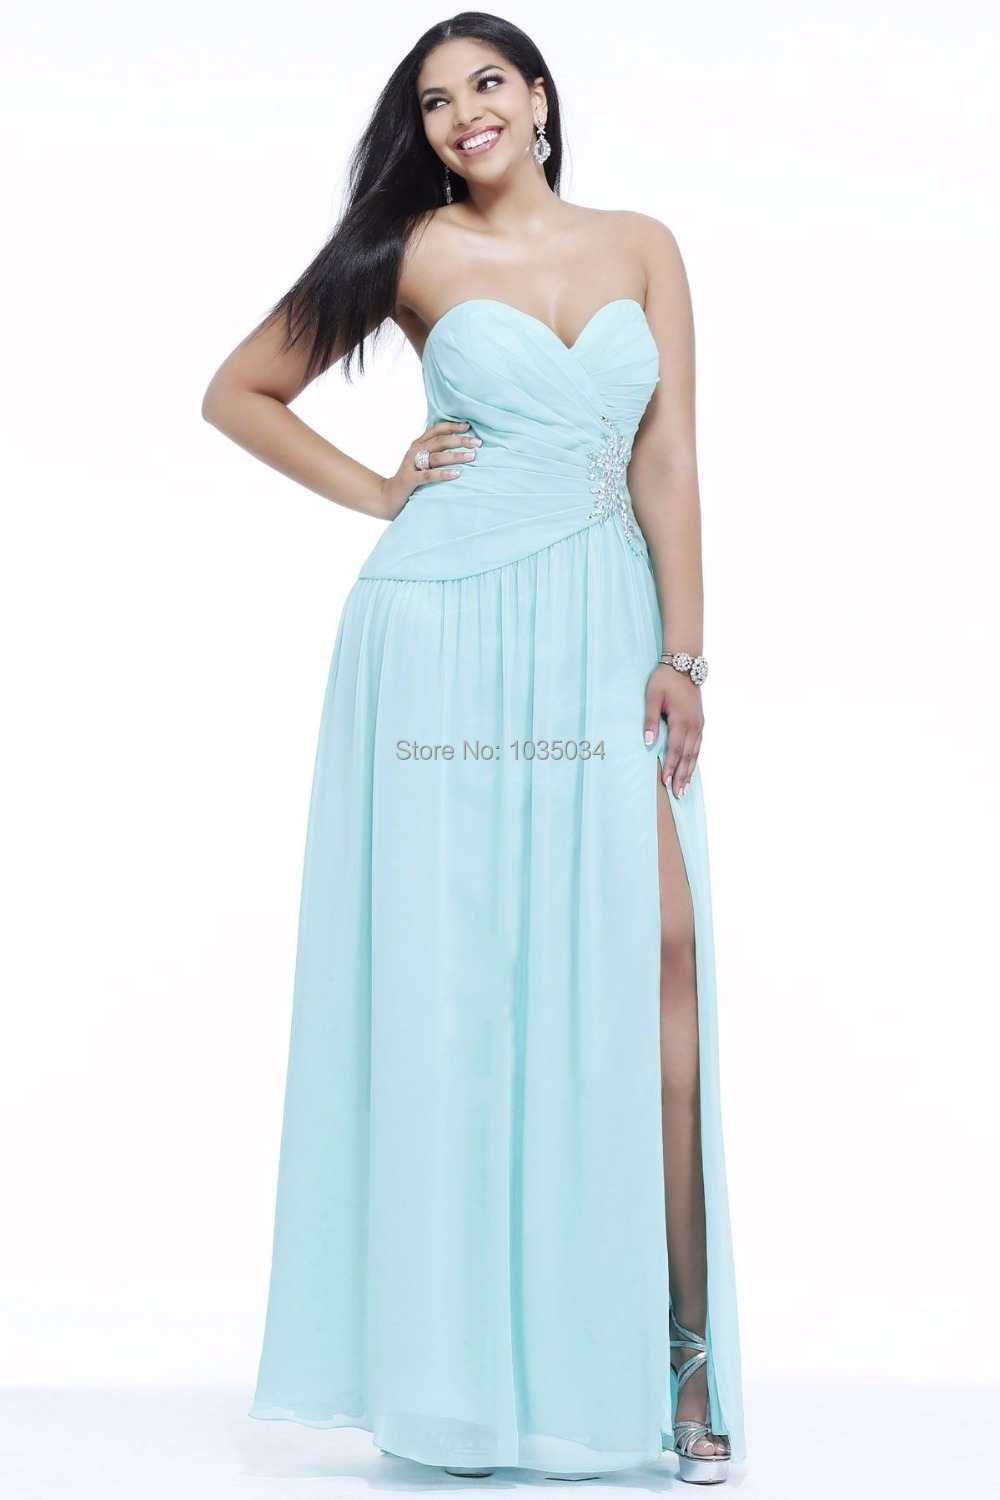 Light Blue Plus Size Dresses - Discount Evening Dresses